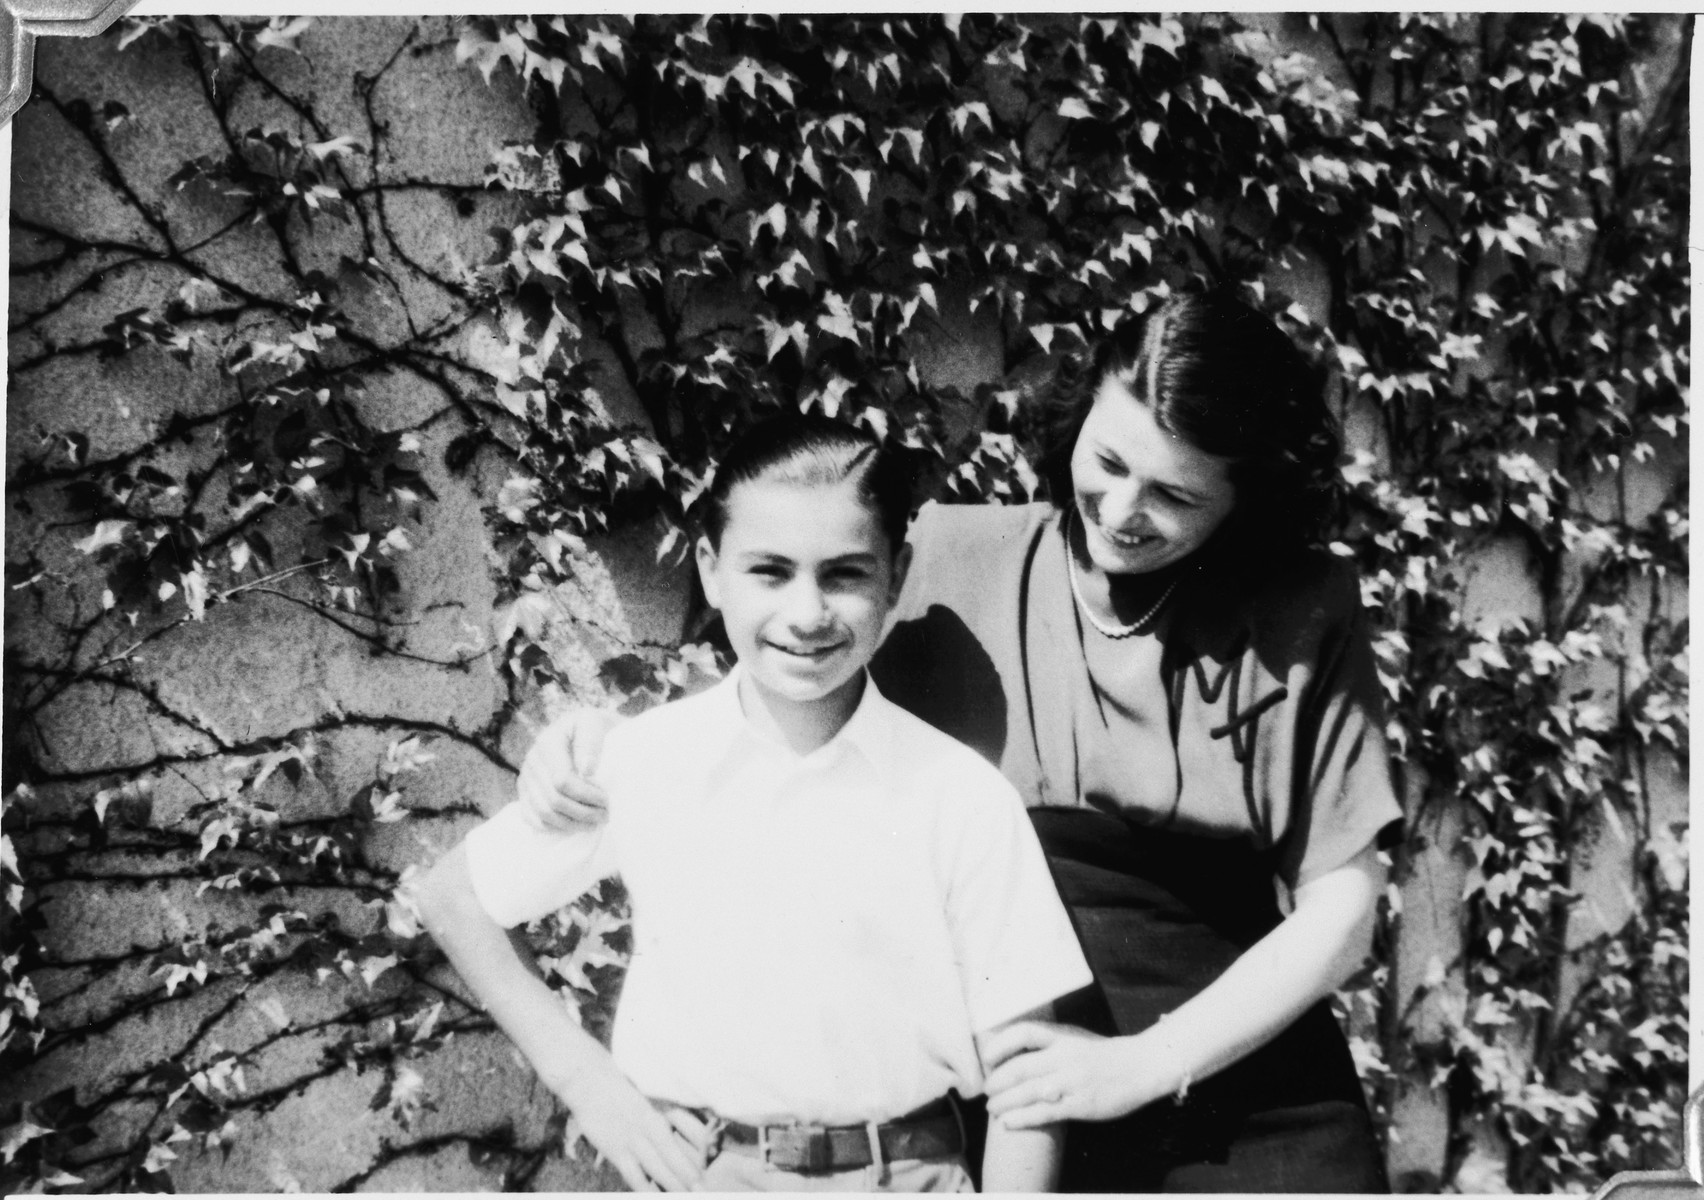 Portrait of two young people in the Windsheim displaced persons' camp.